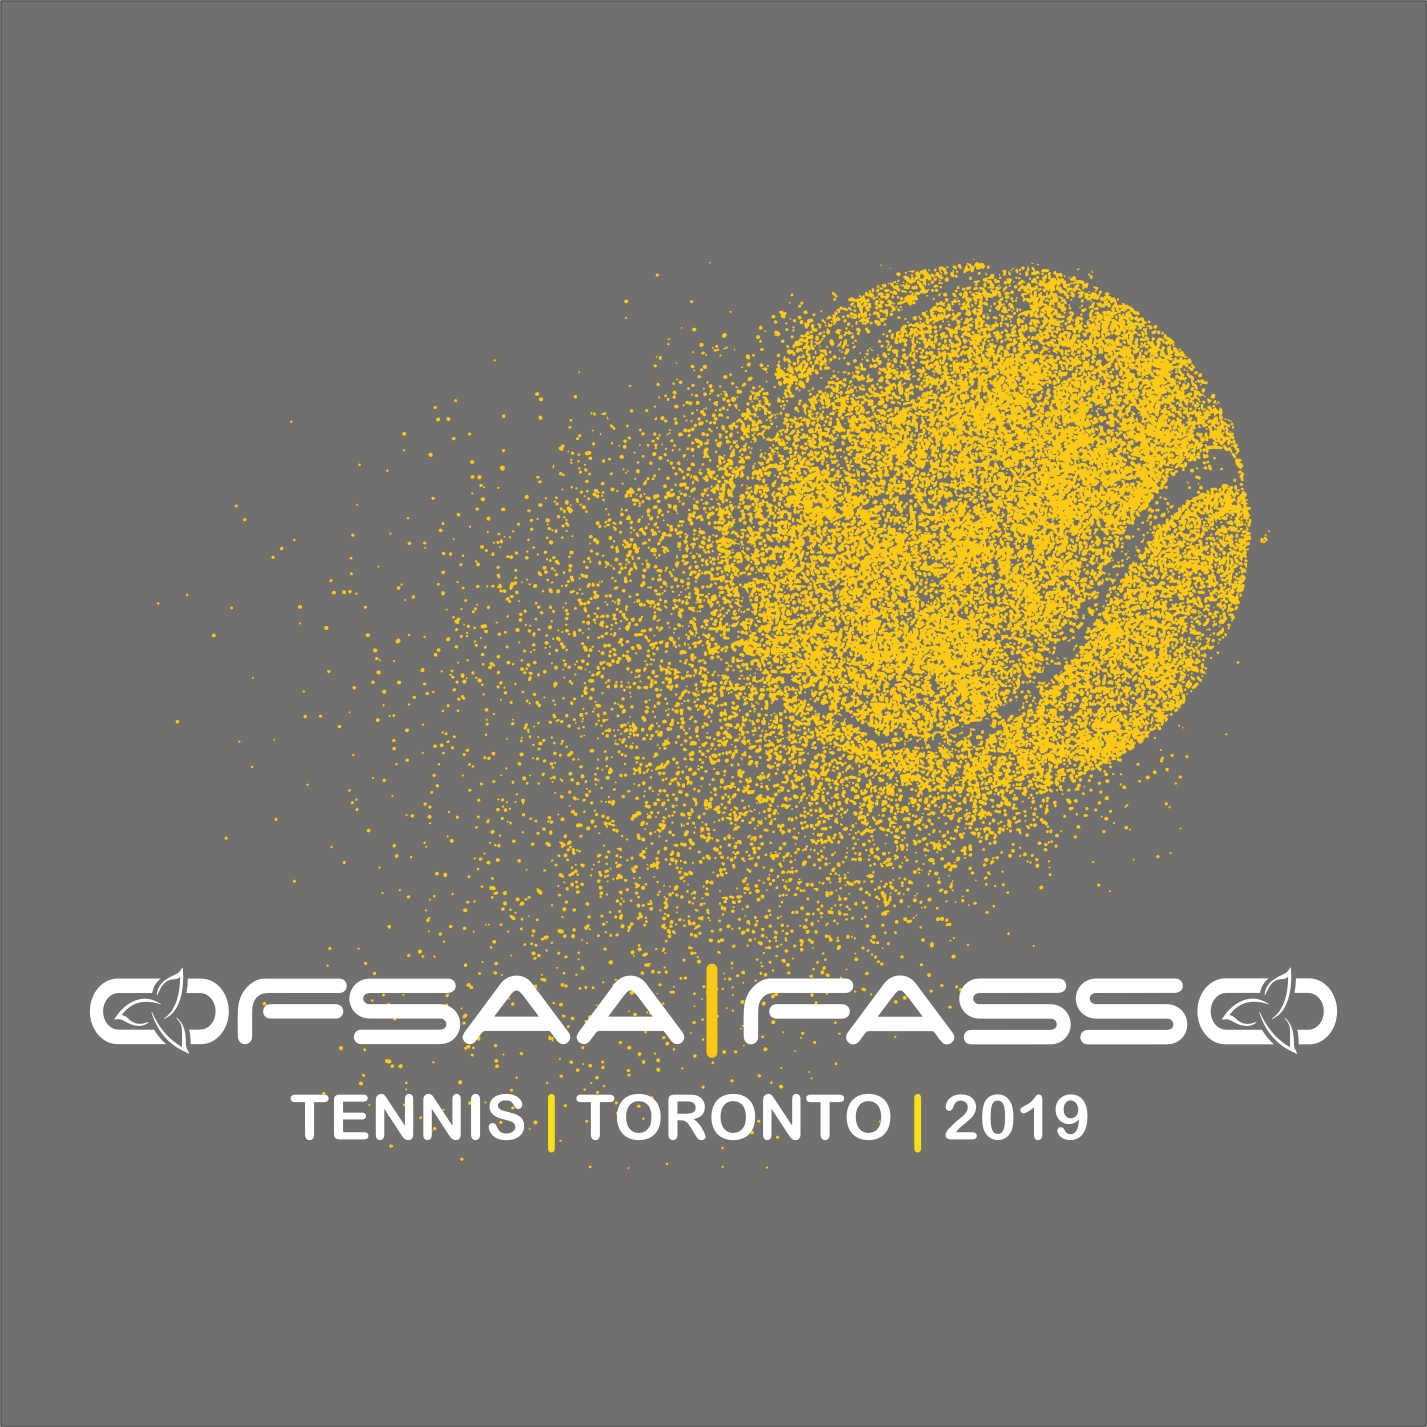 2019 Tennis logo grey.jpg